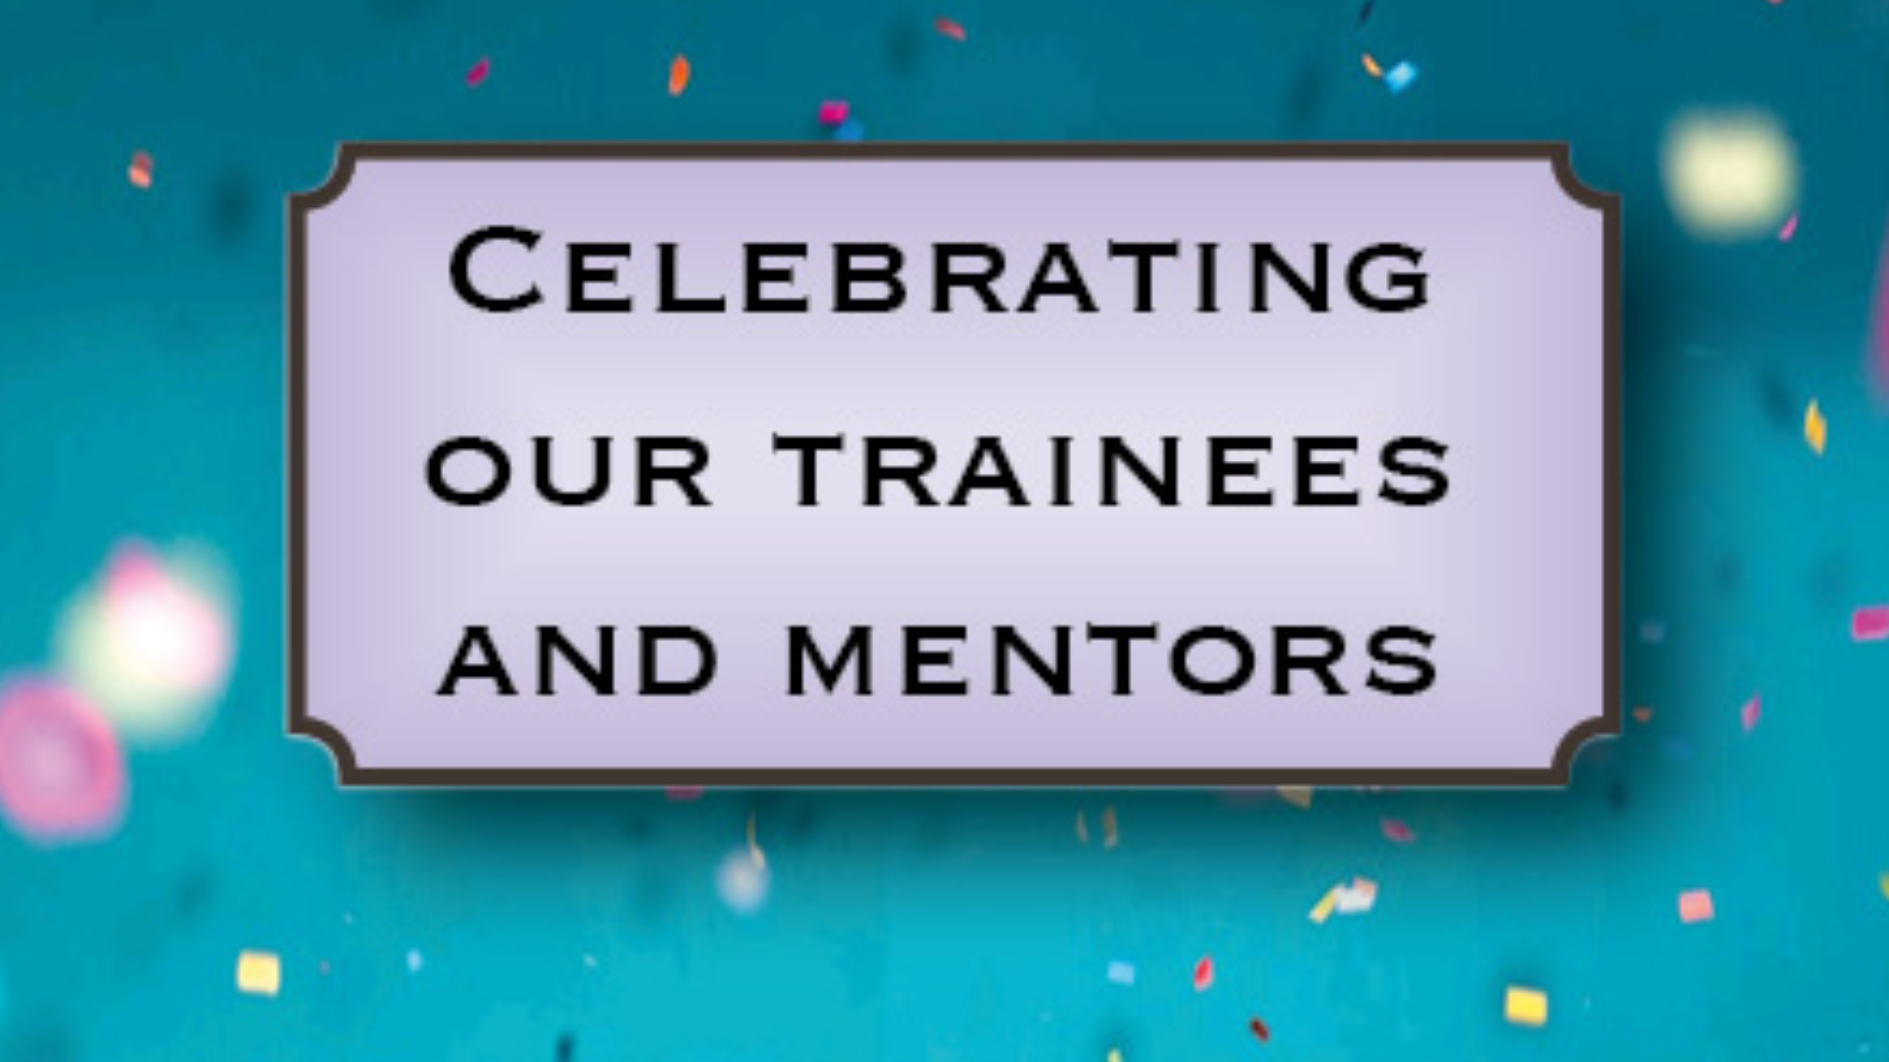 Celebrating our Trainees and Mentors